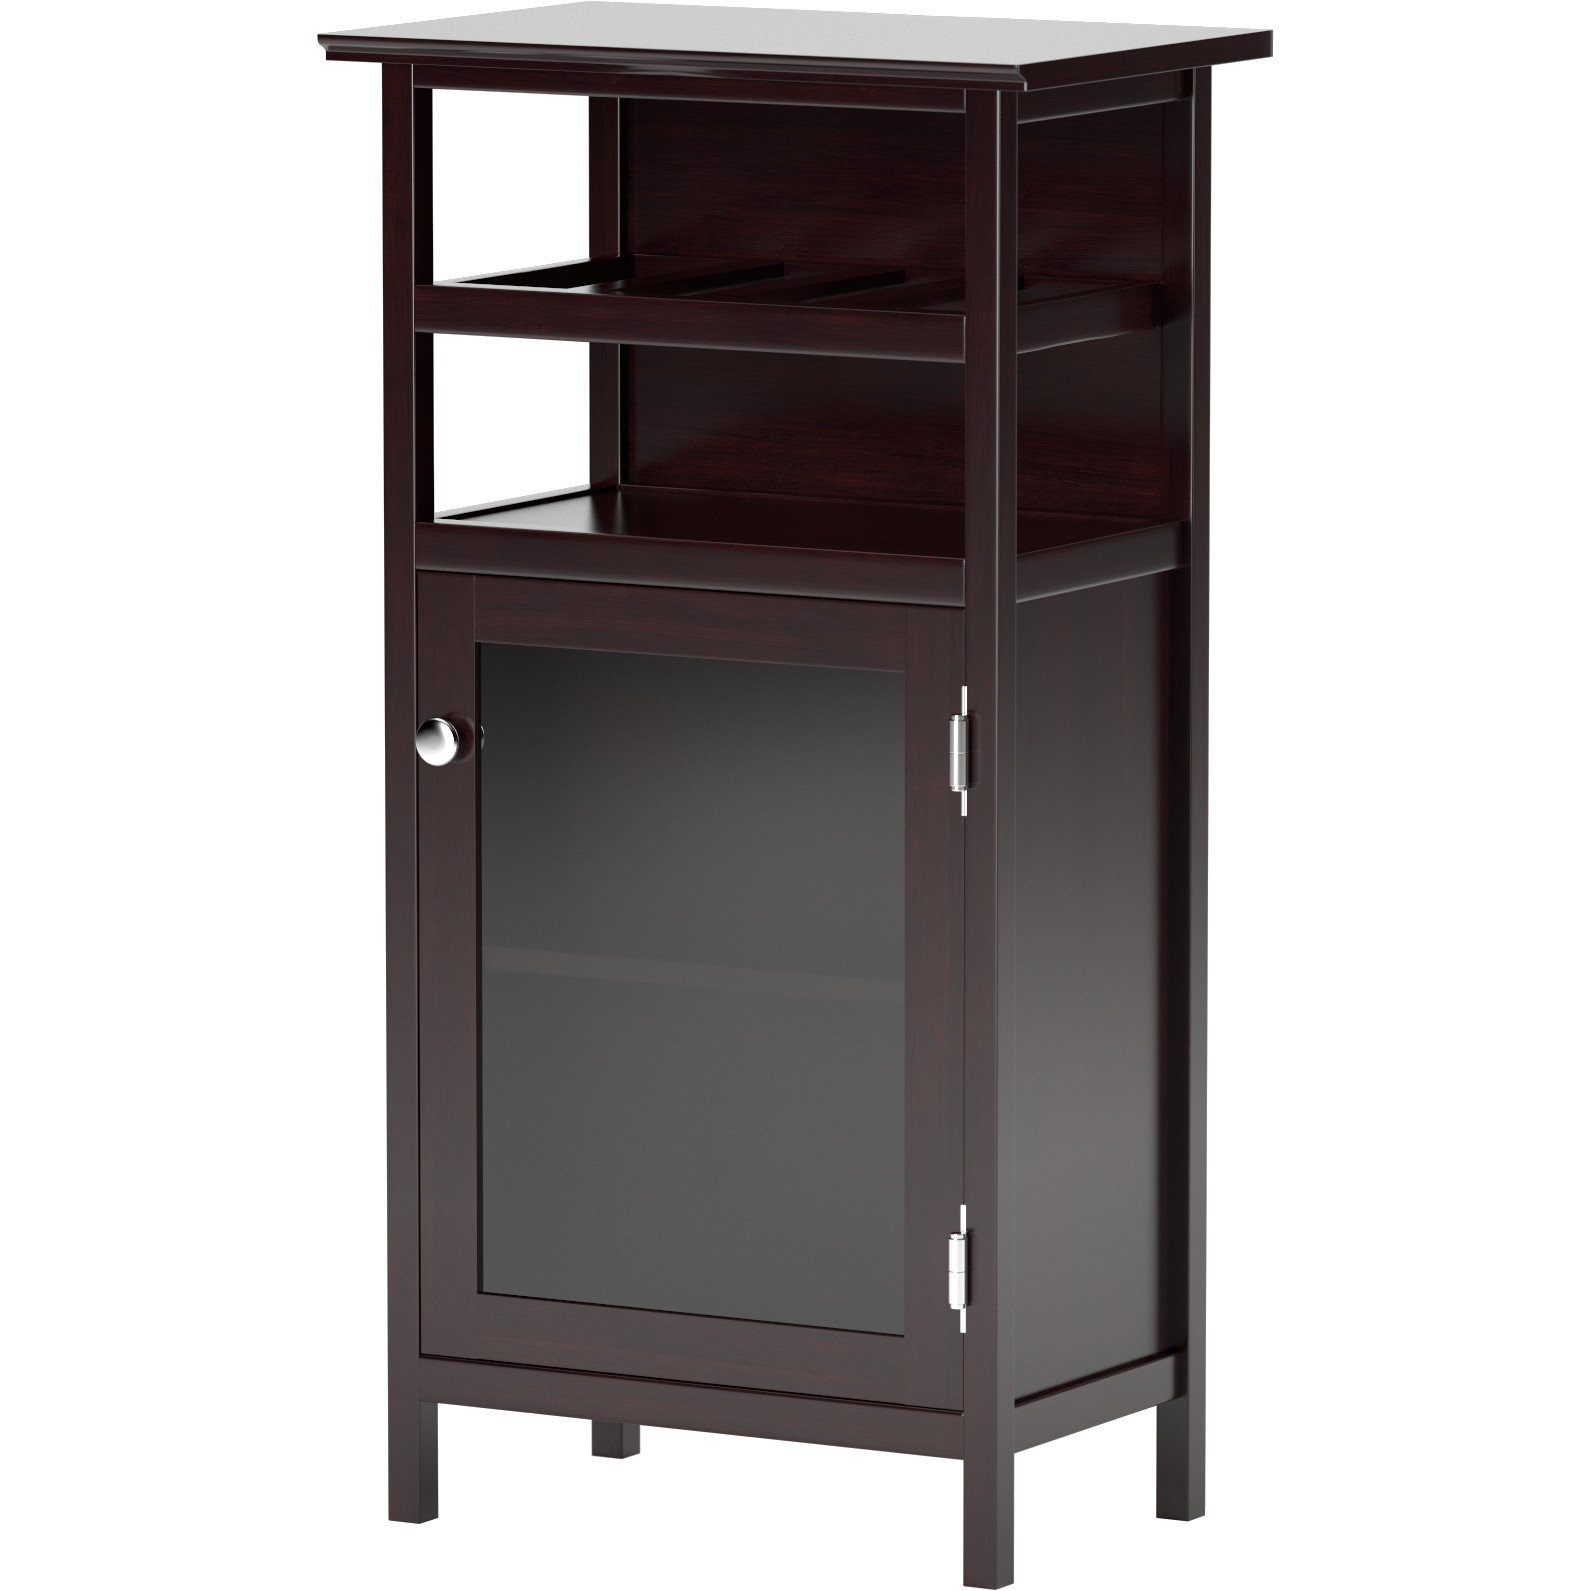 Alta 8 Bottle Floor Wine Cabinet with 2 Interior Shelves Made w/ Manufactured Wood in Espresso Finish 37.48'' H x 19.13'' W x 12.72'' D in.